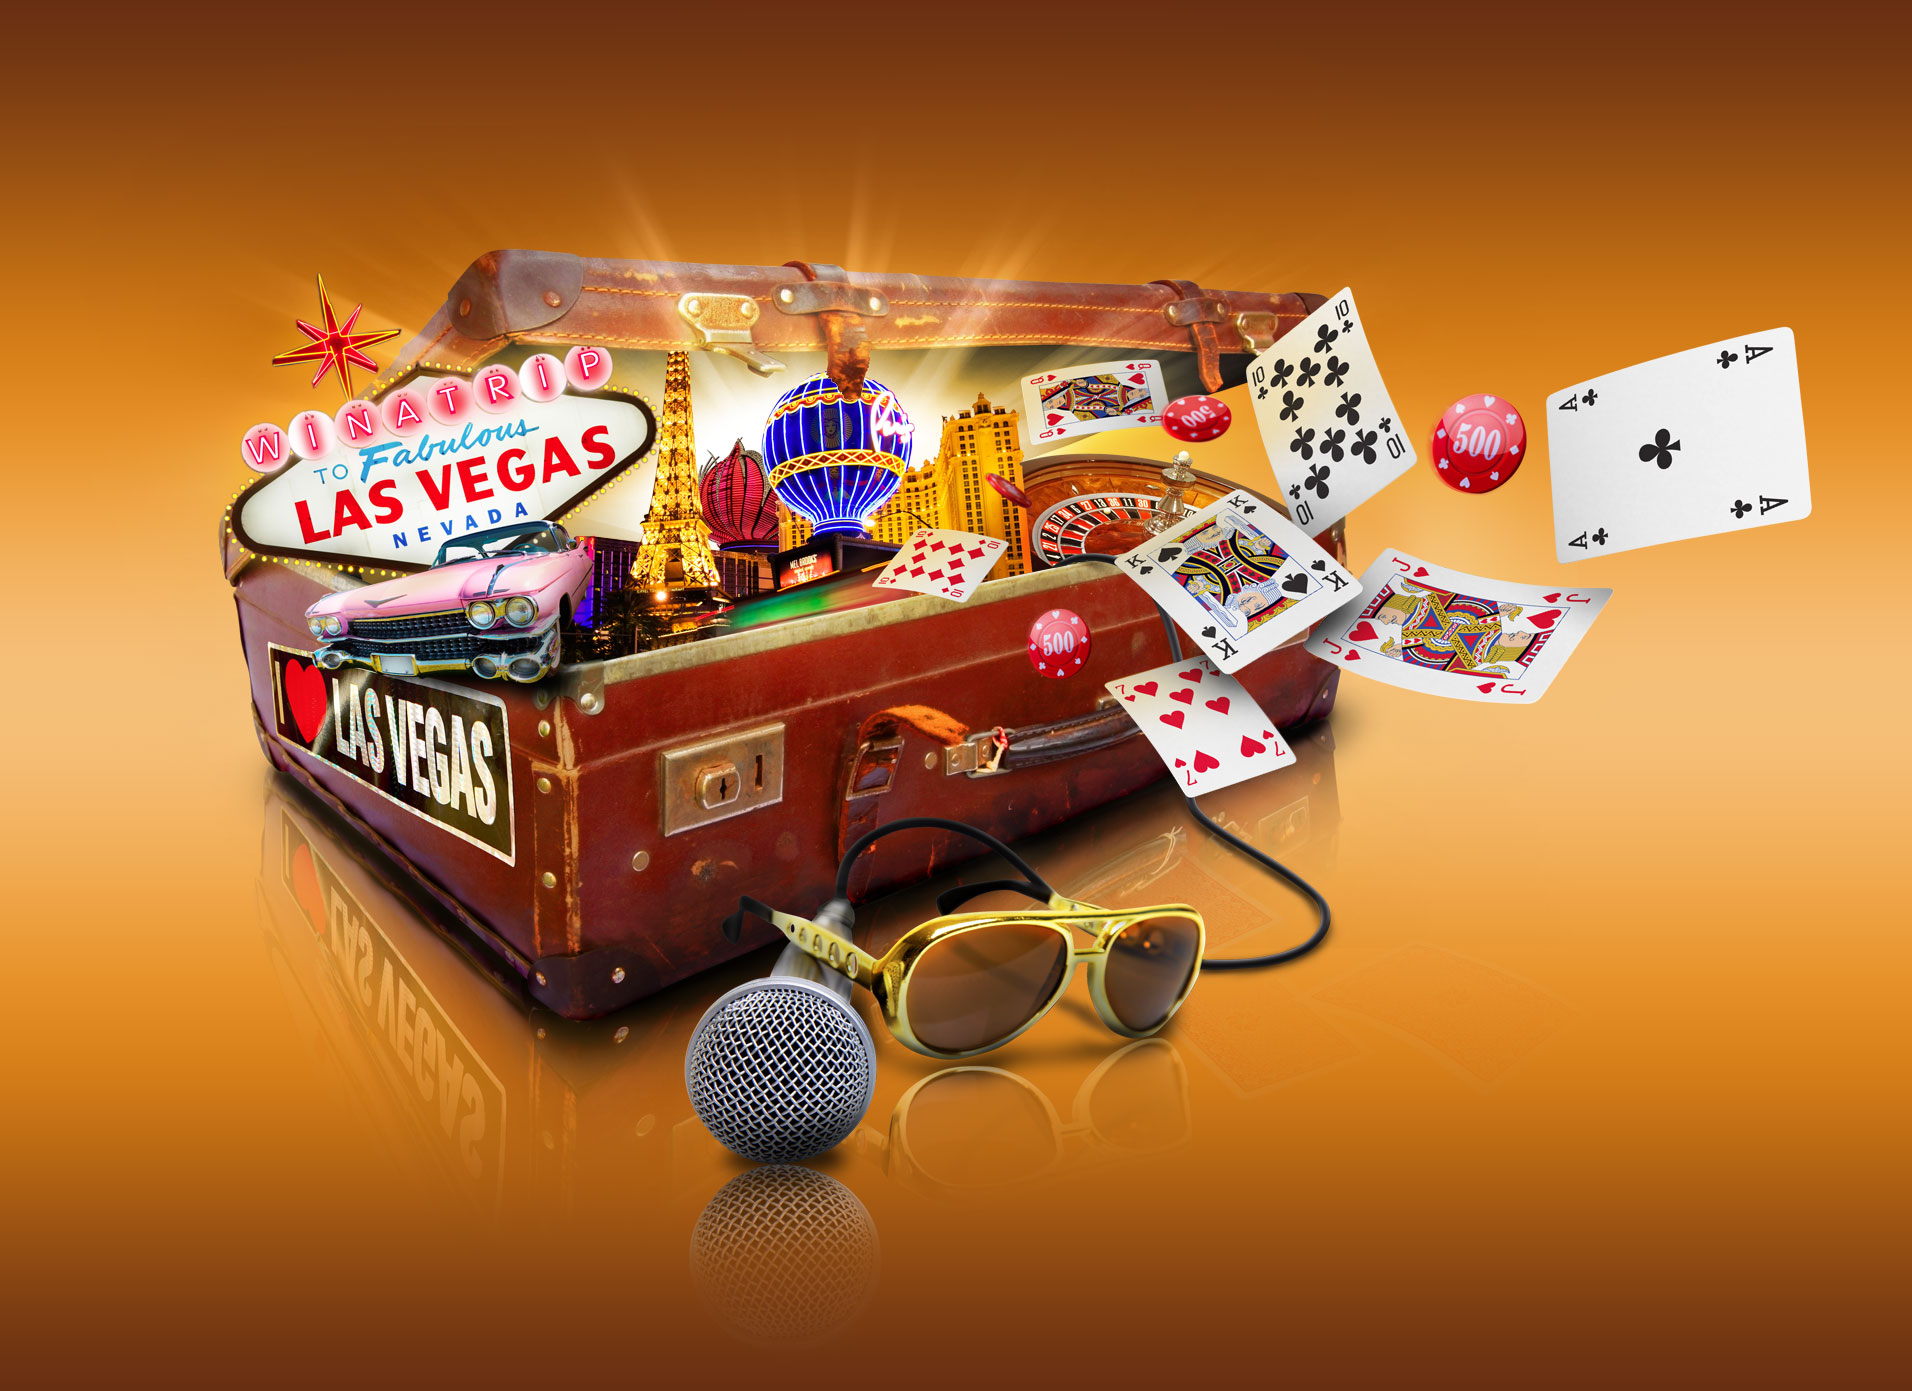 Grosvenor Casinos Win a Trip to Vegas